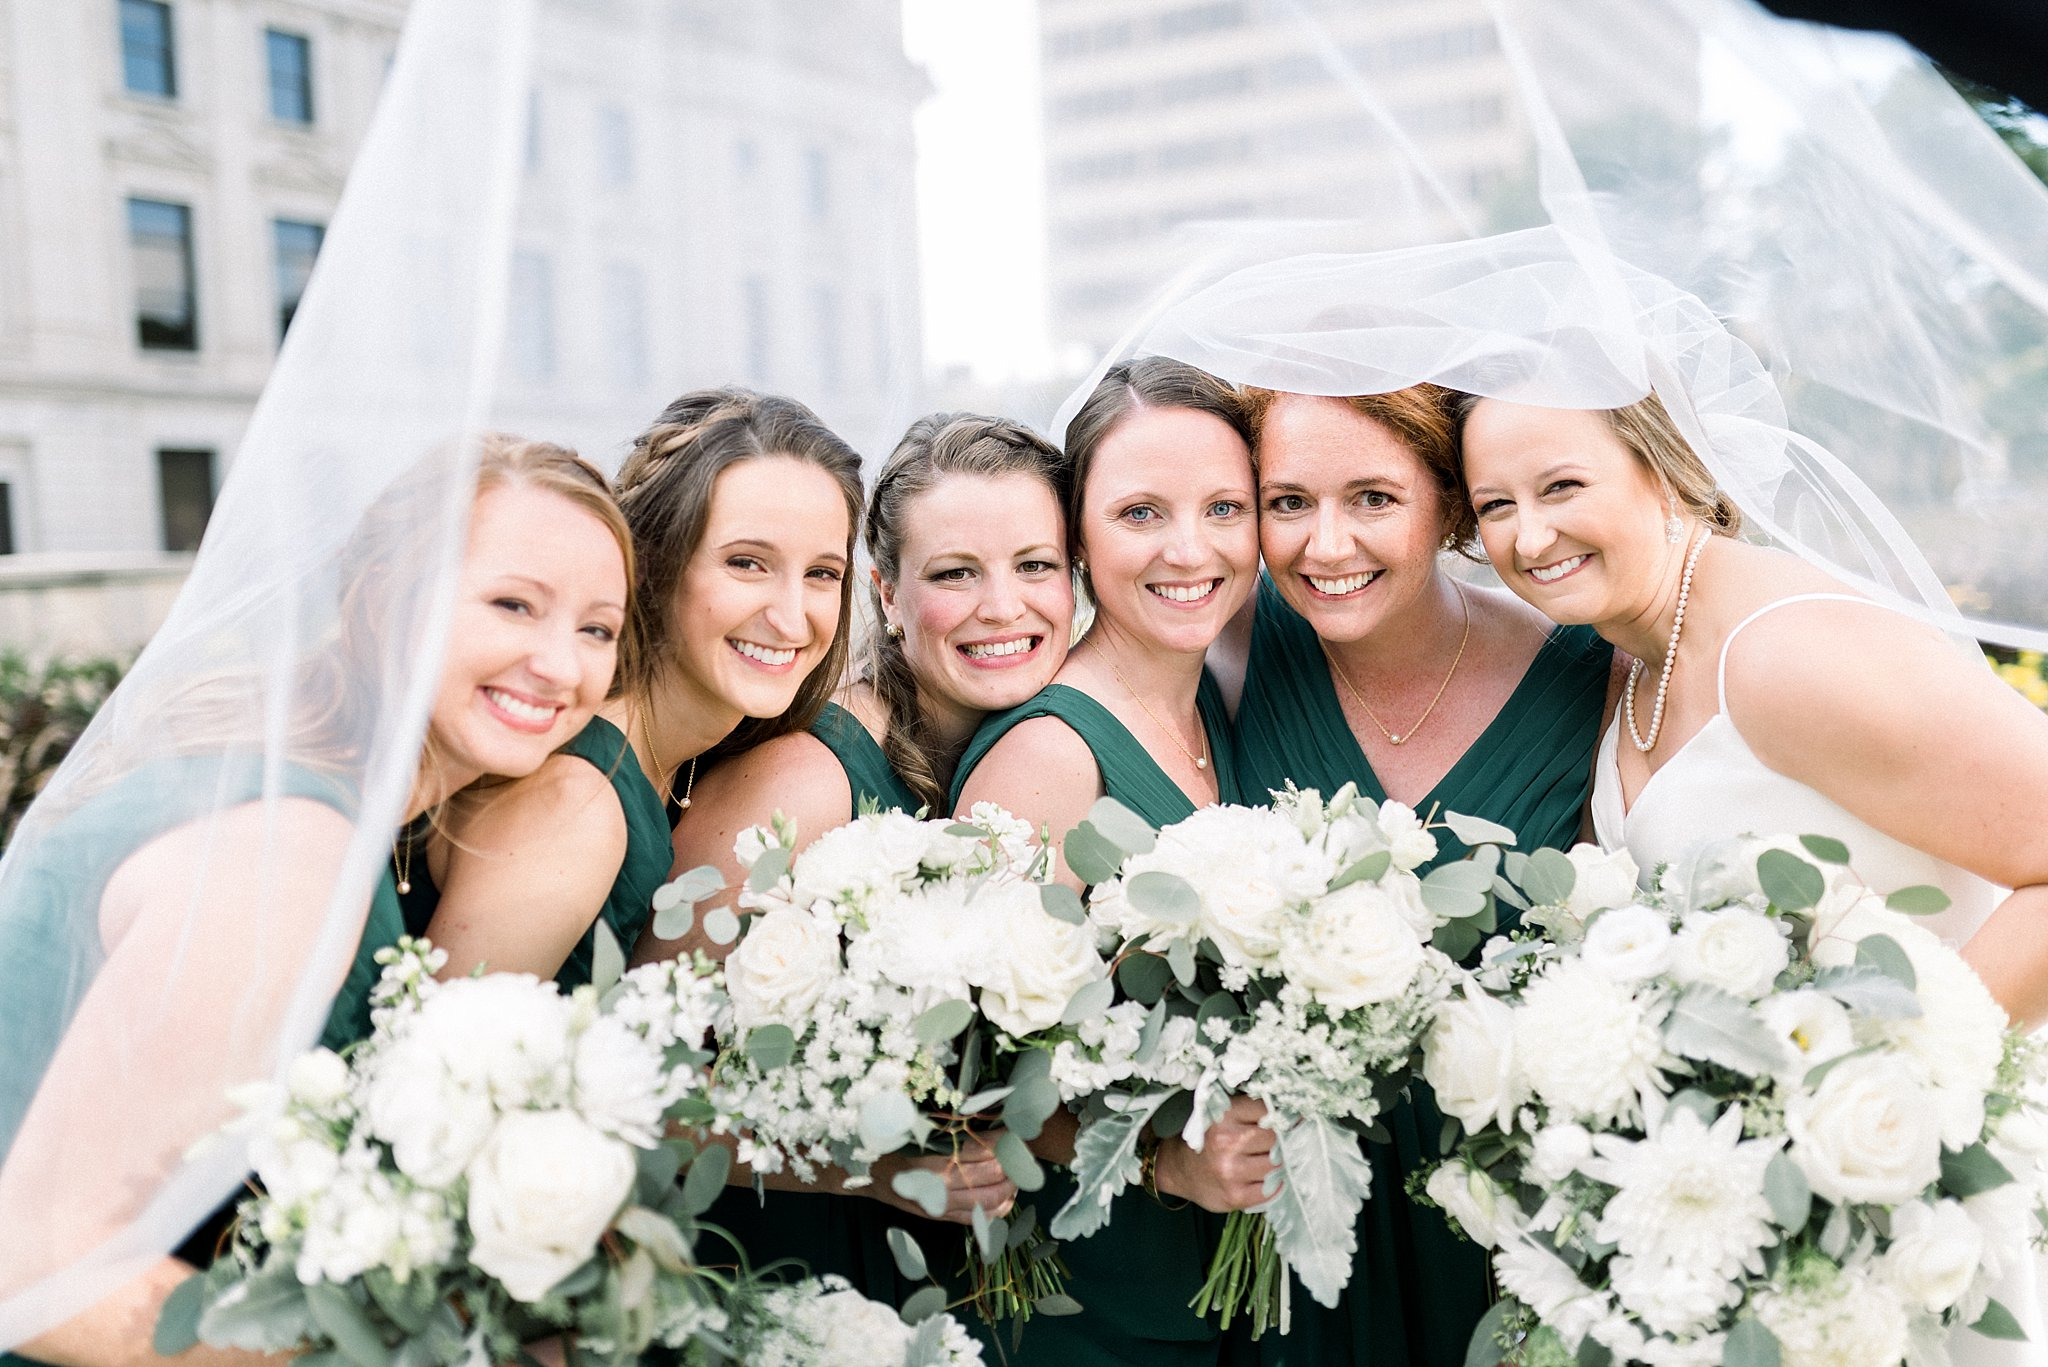 Allen County Courthouse Wedding